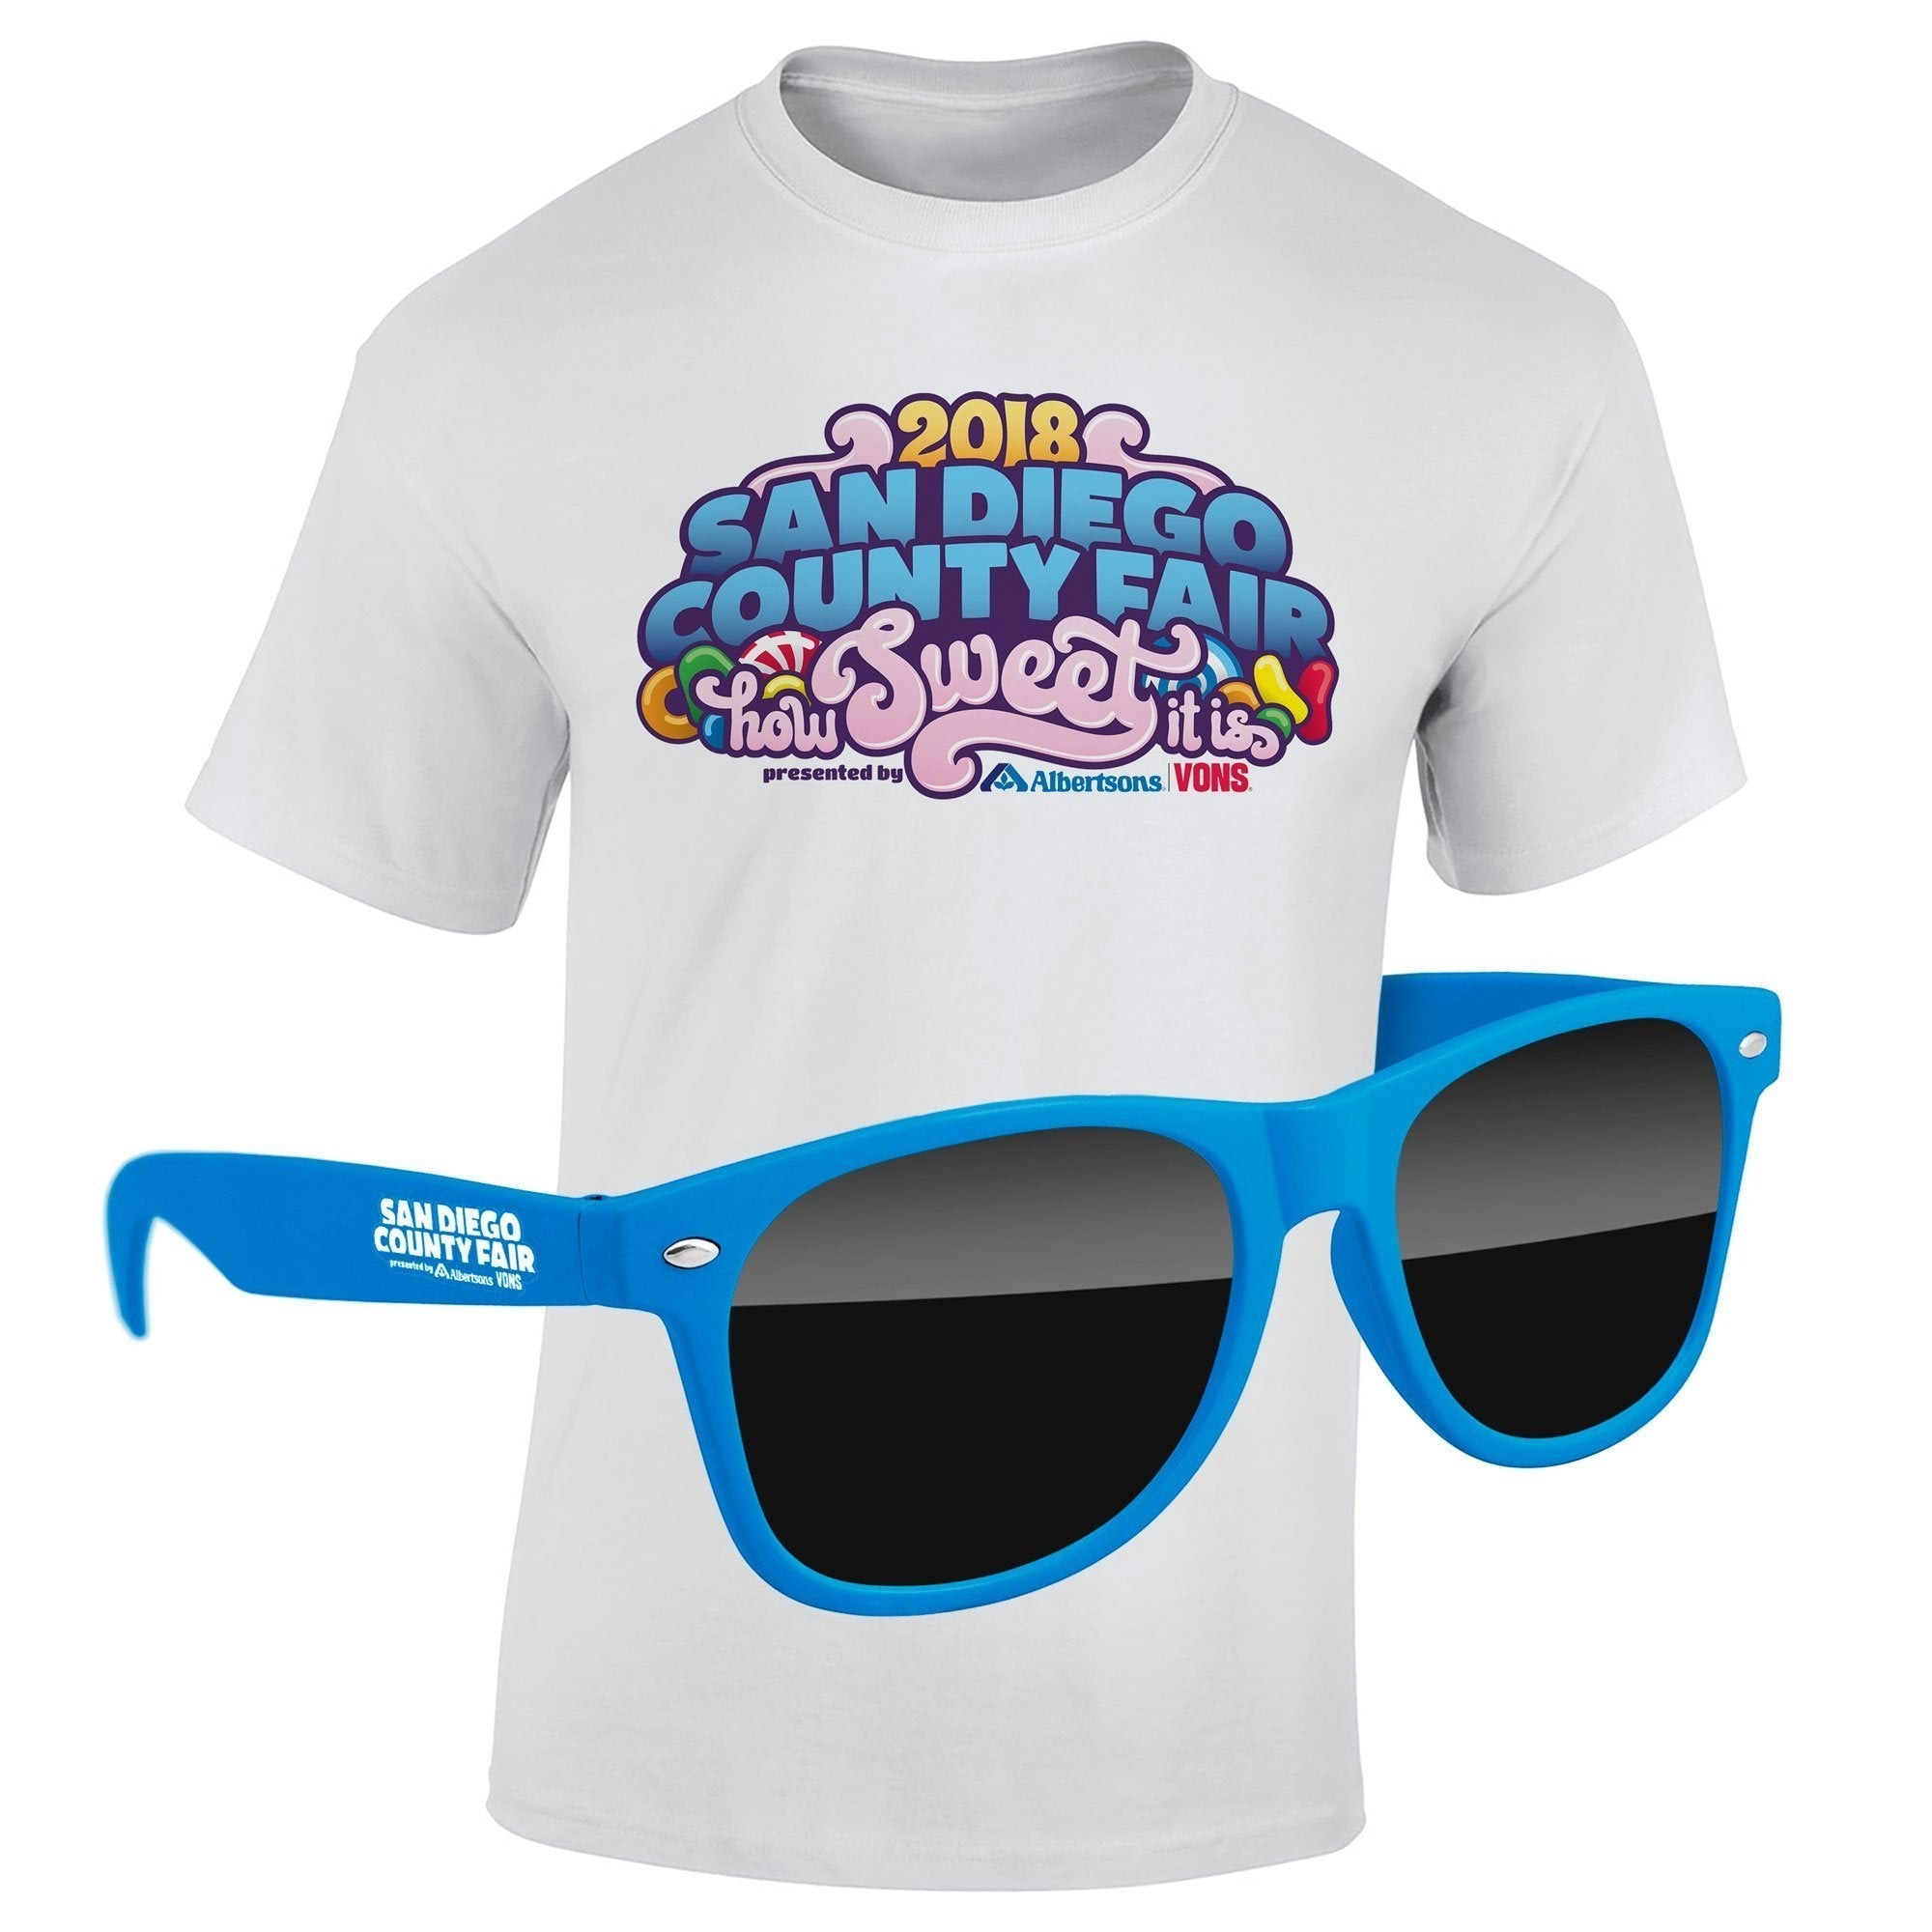 "4980-1KL12 - T-Shirt & Sunglasses Kit - Full-Color On White/Very Light T-Shirt (Up To 12"" x 12"")"